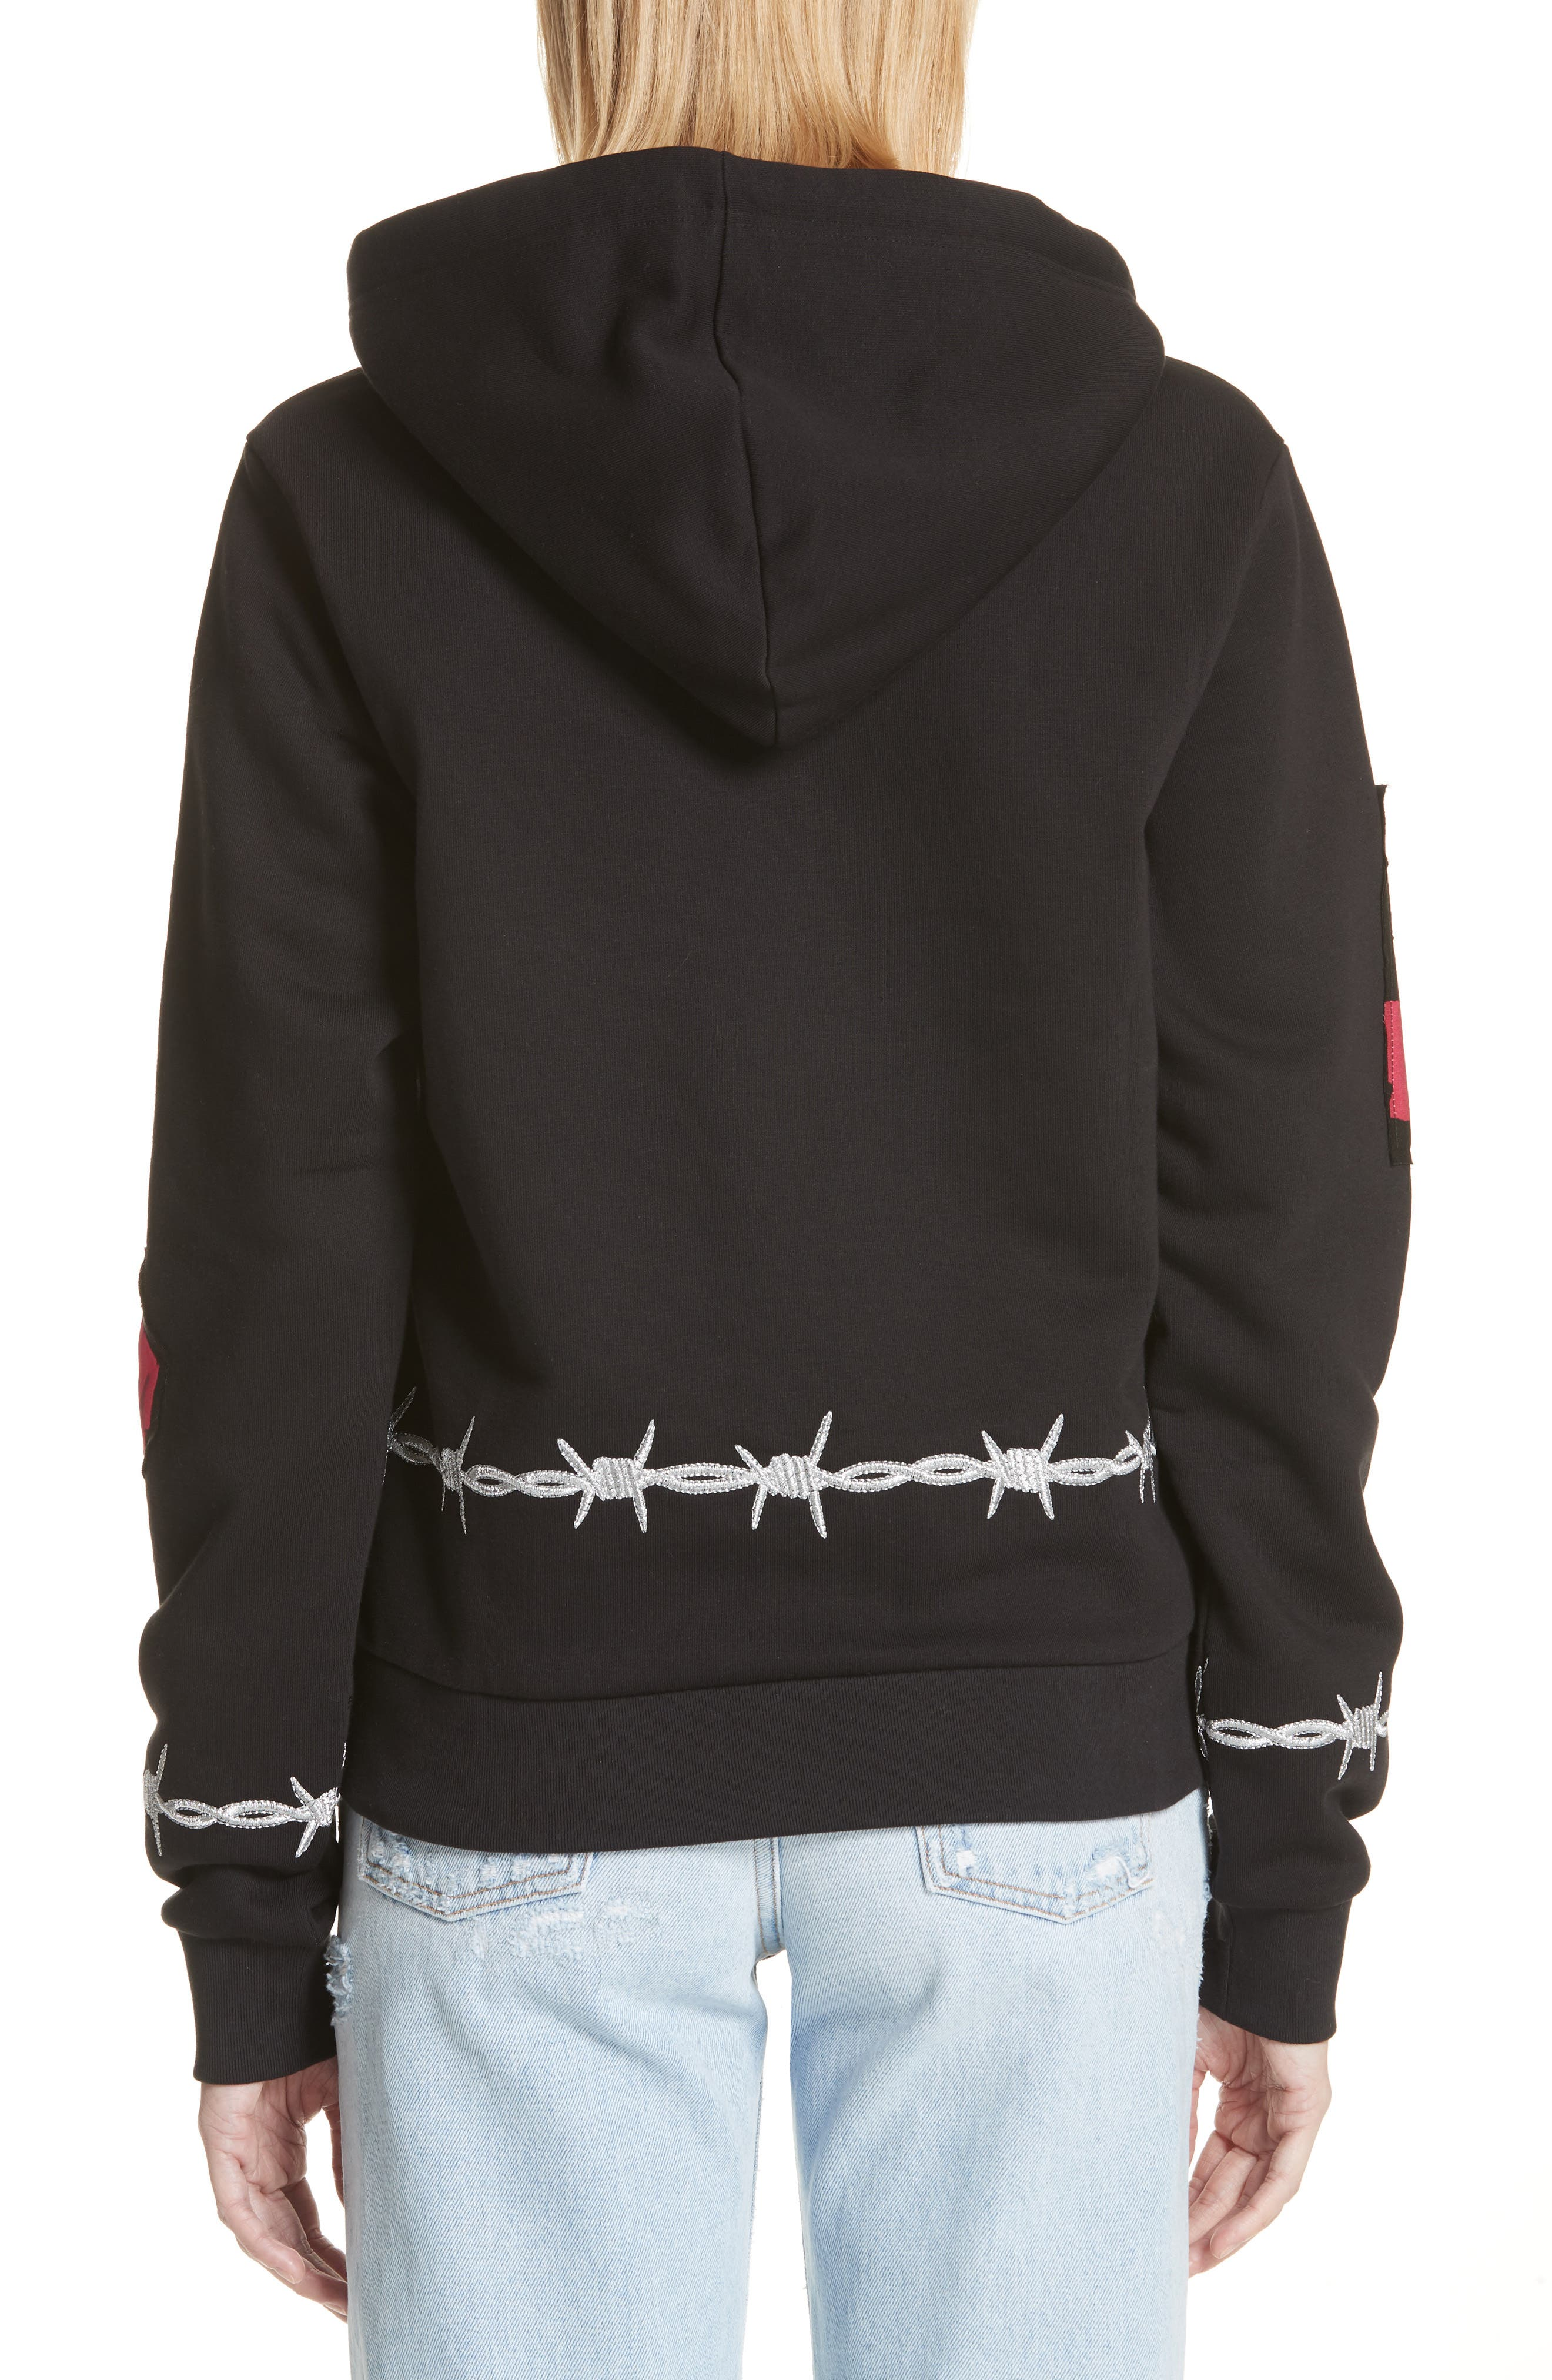 Protester Sweatshirt,                             Alternate thumbnail 2, color,